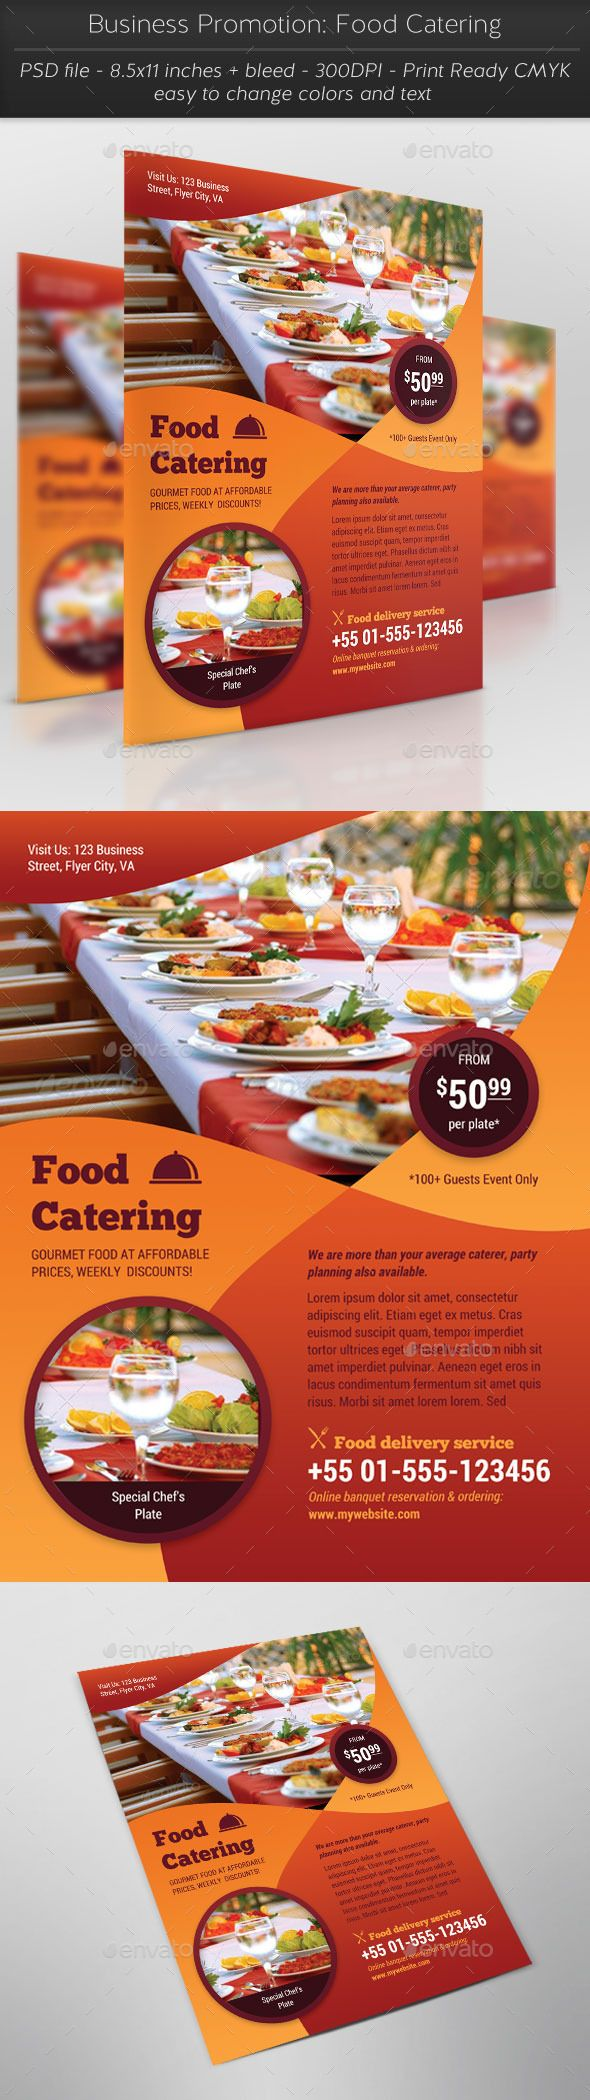 Business Promotion Food Catering Flyer Template PSD #design Download: http://graphicriver.net/item/business-promotion-food-catering/12817006?ref=ksioks